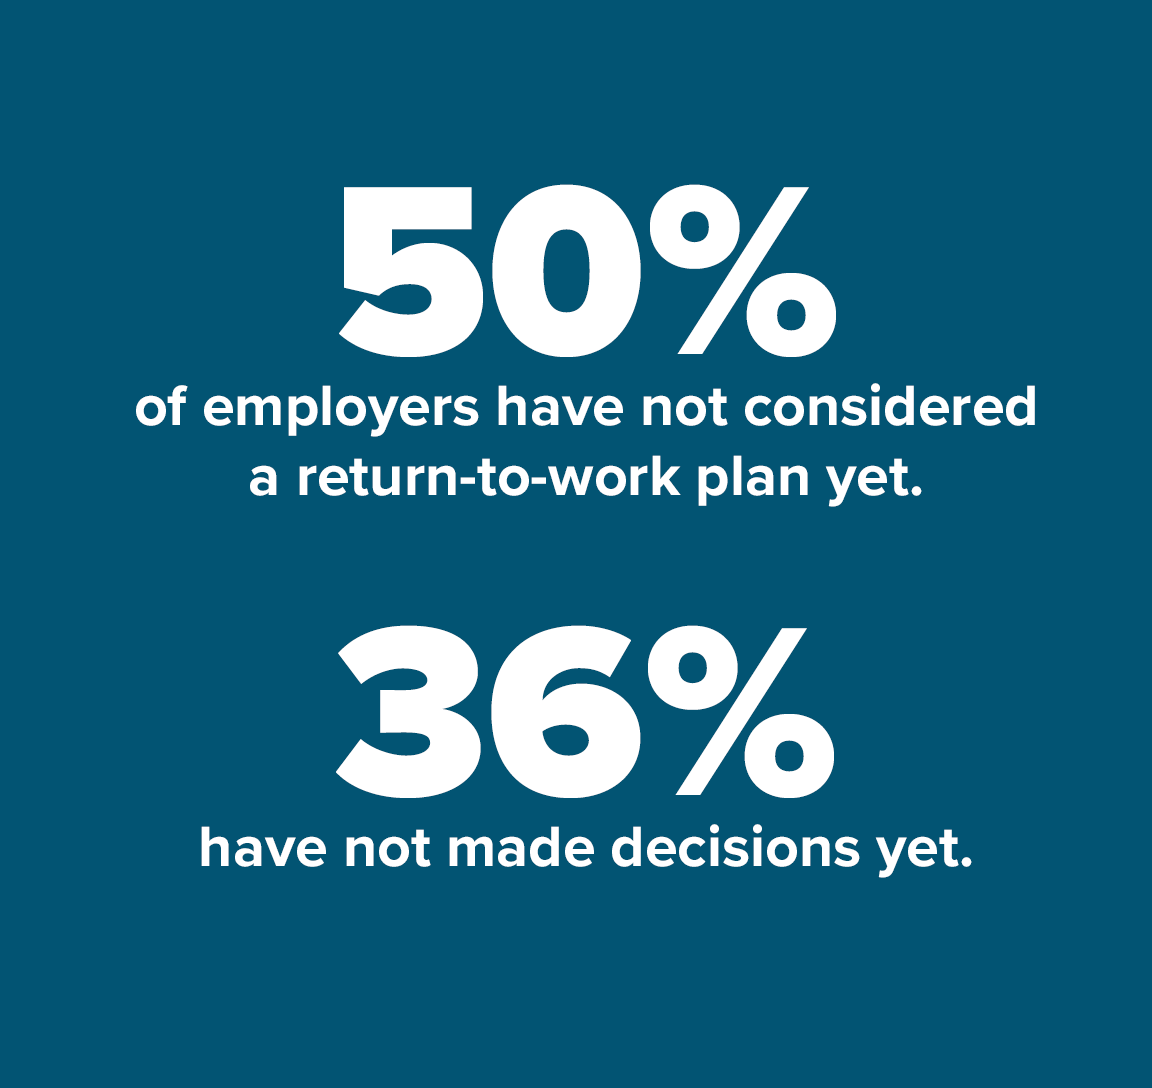 50% of employers have not considered a return-to-work plan yet. 36% have not made decisions yet.